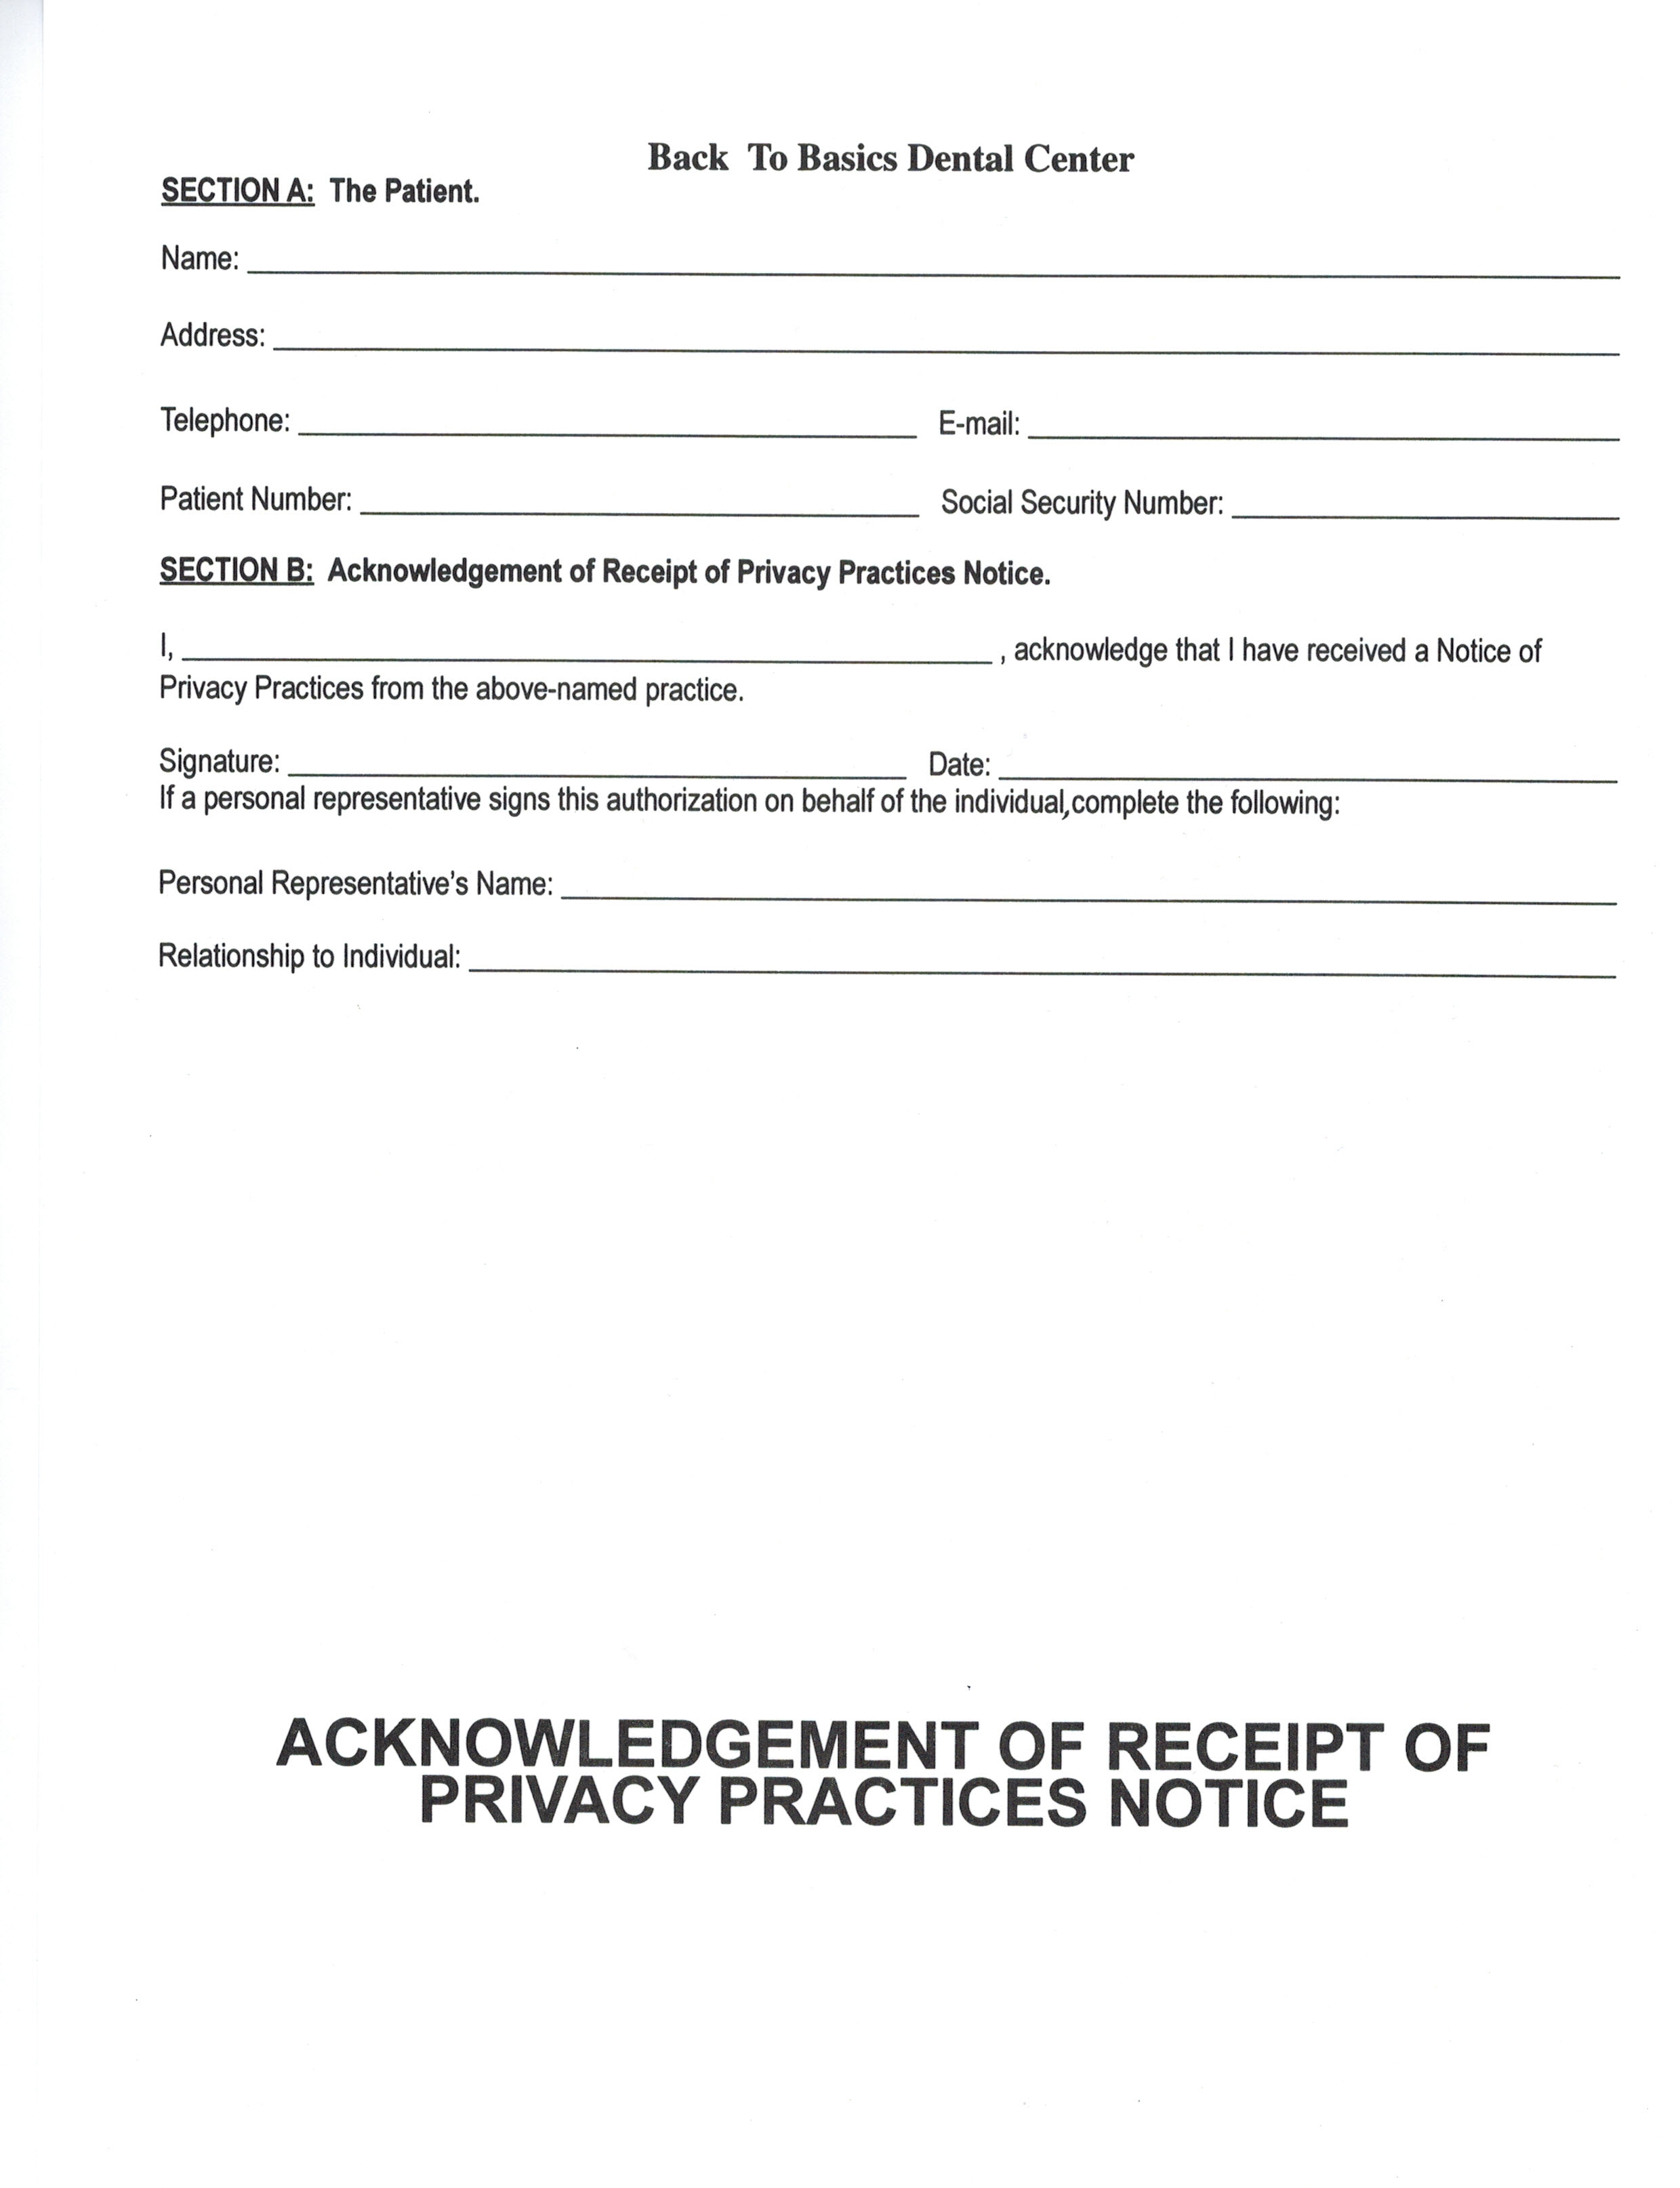 Receipt Of Notice Of Privacy Practices Written Acknowledgement Form